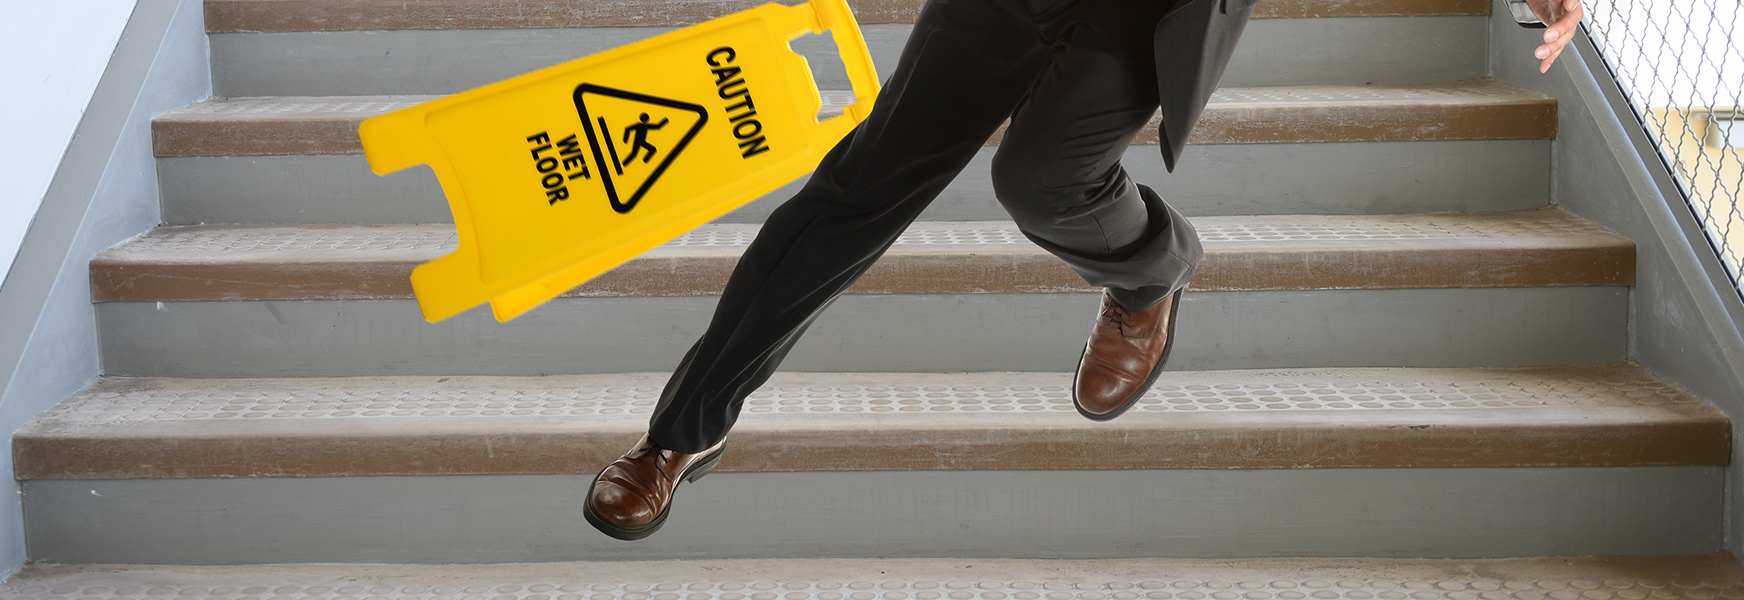 A man slipping and falling down the stairs.